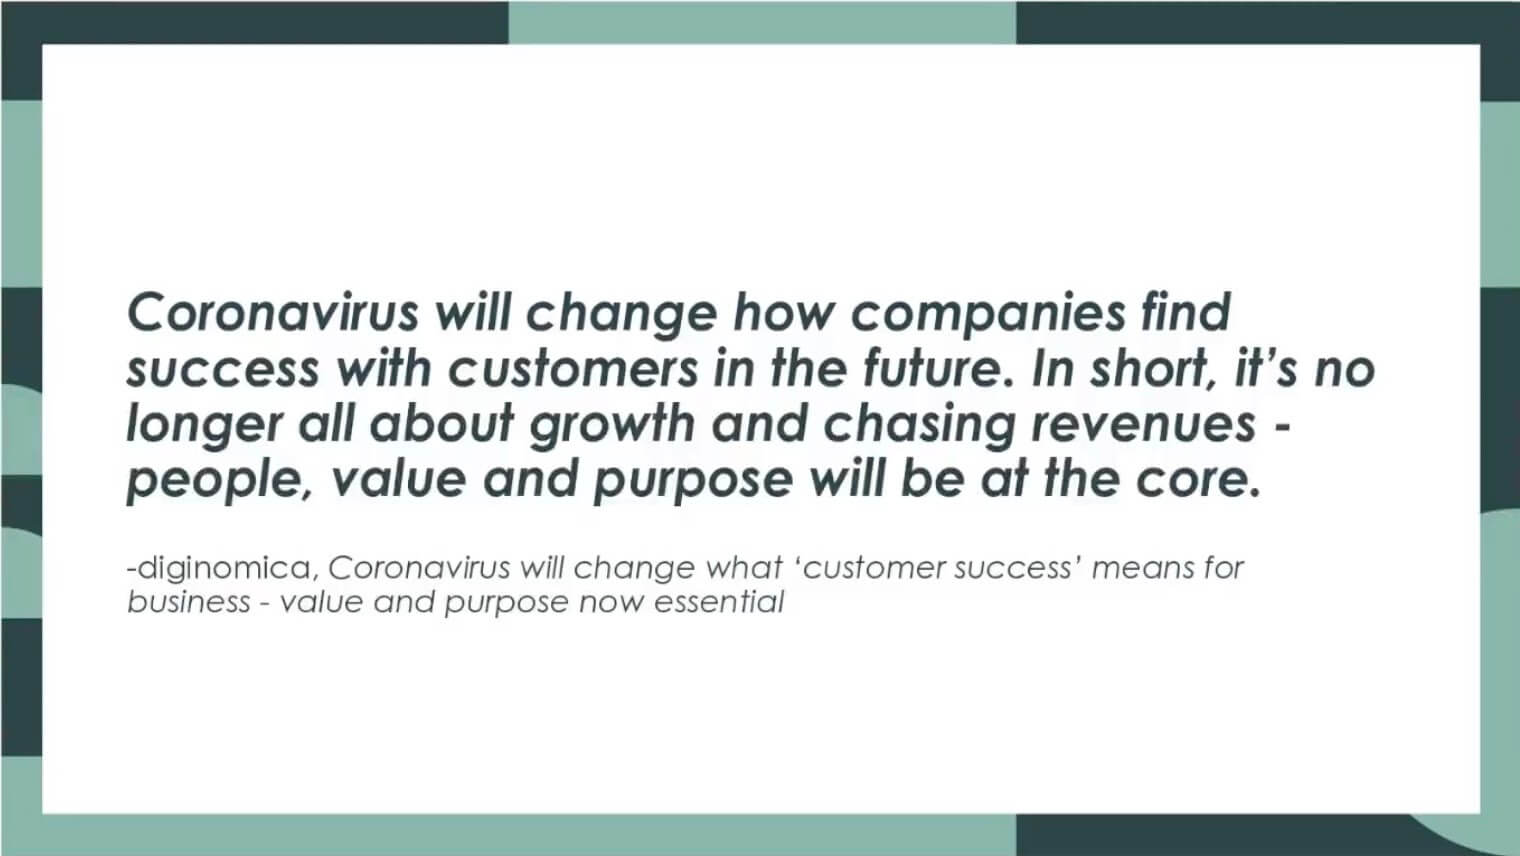 Coronavirus will change what customer success means for business